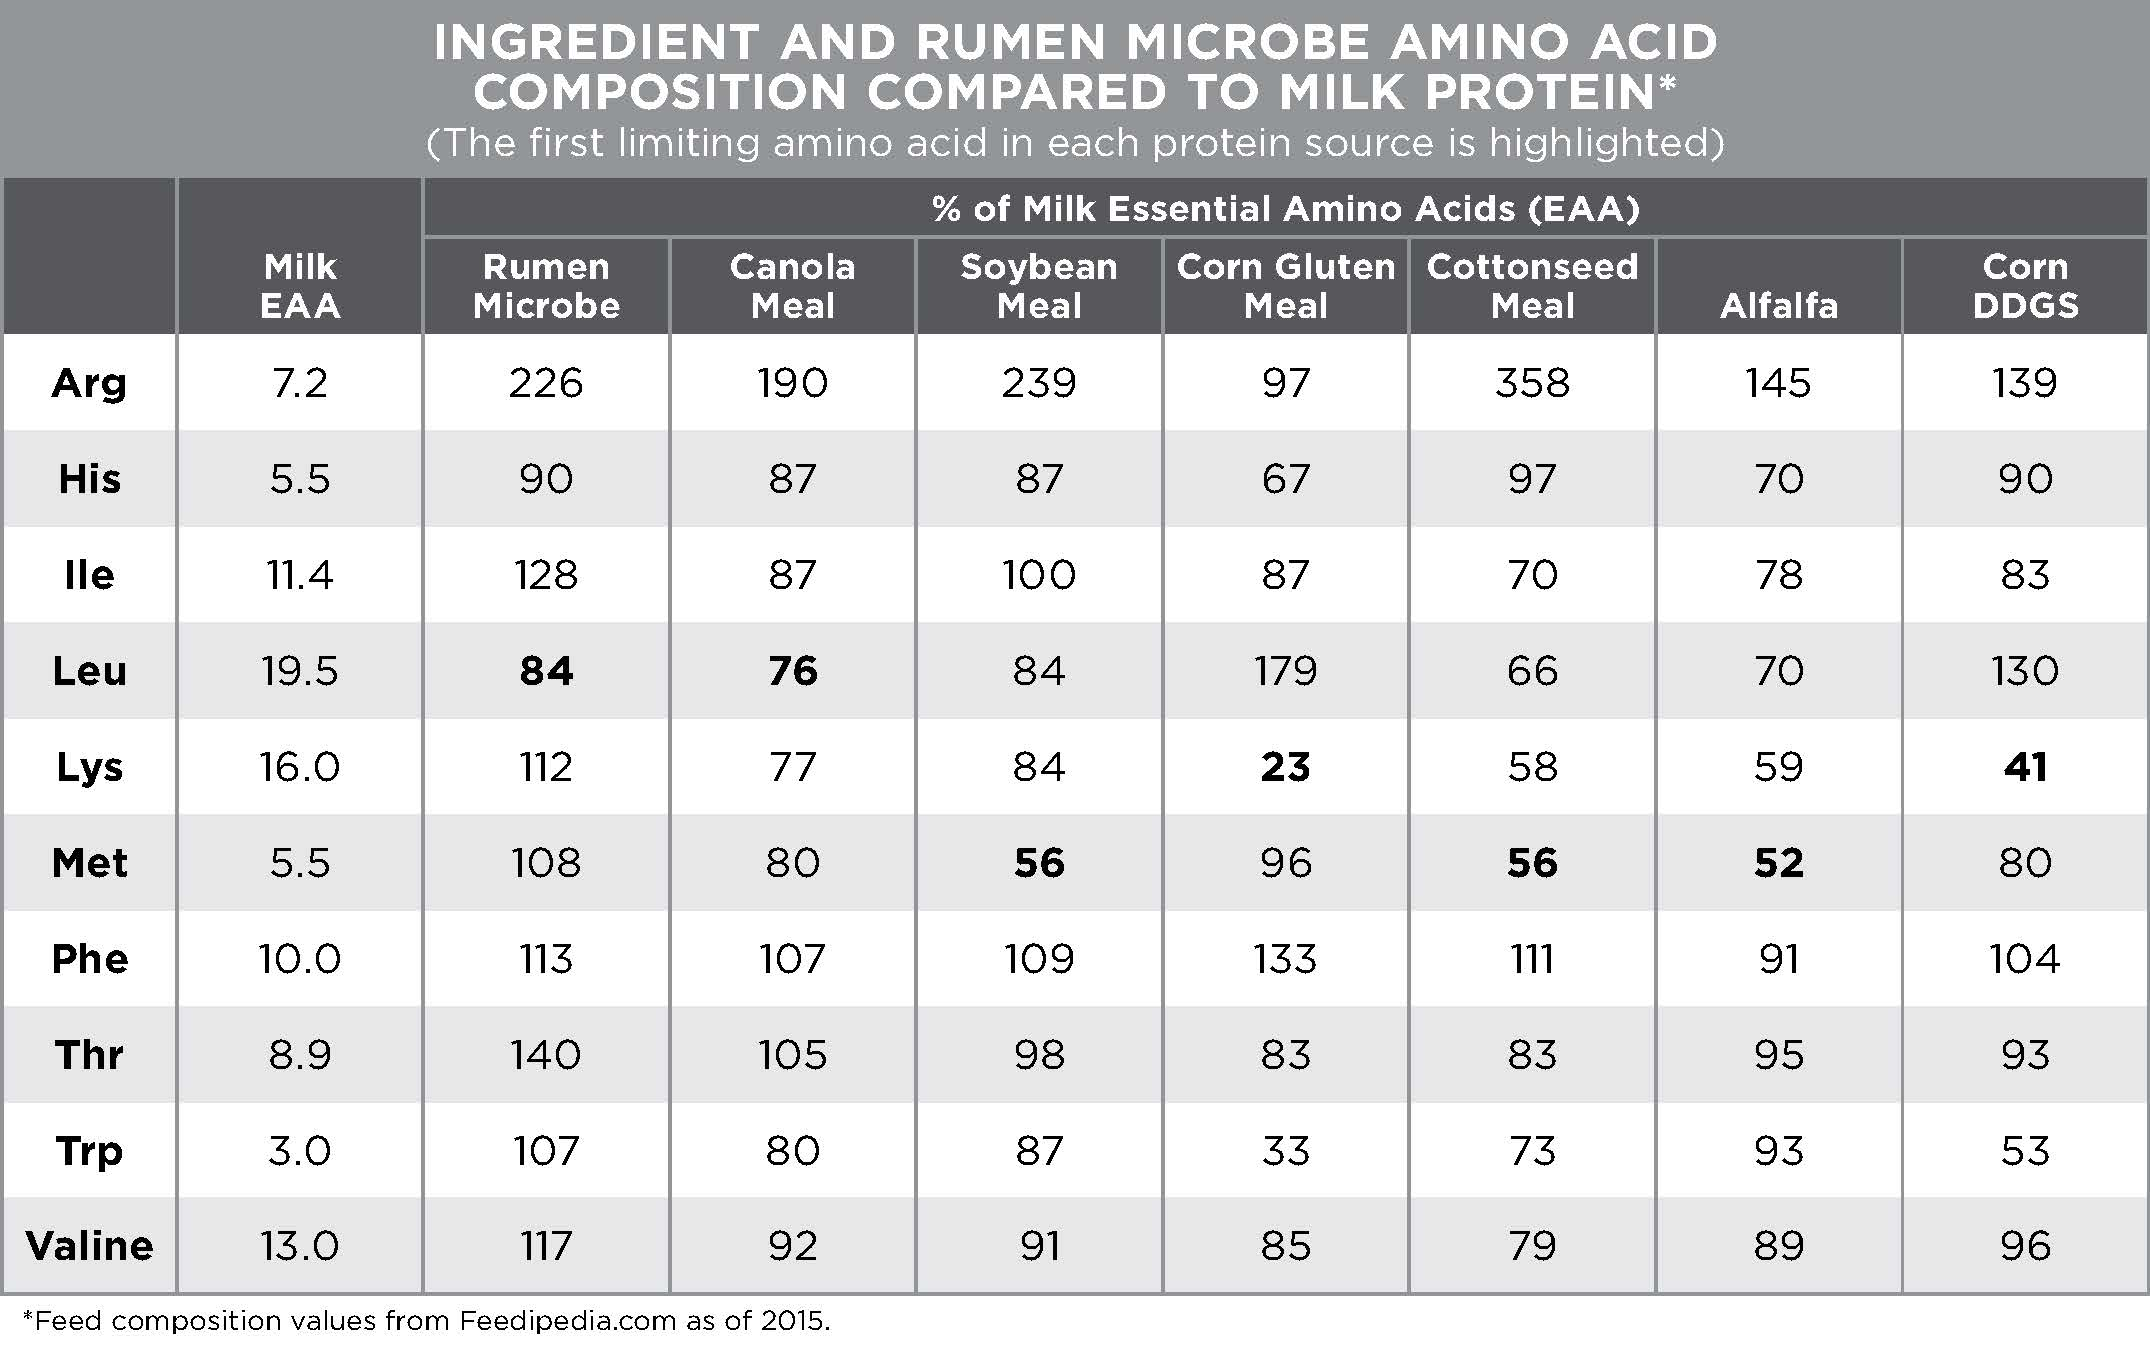 Comparing Amino Acid Profiles Of Protein Sources